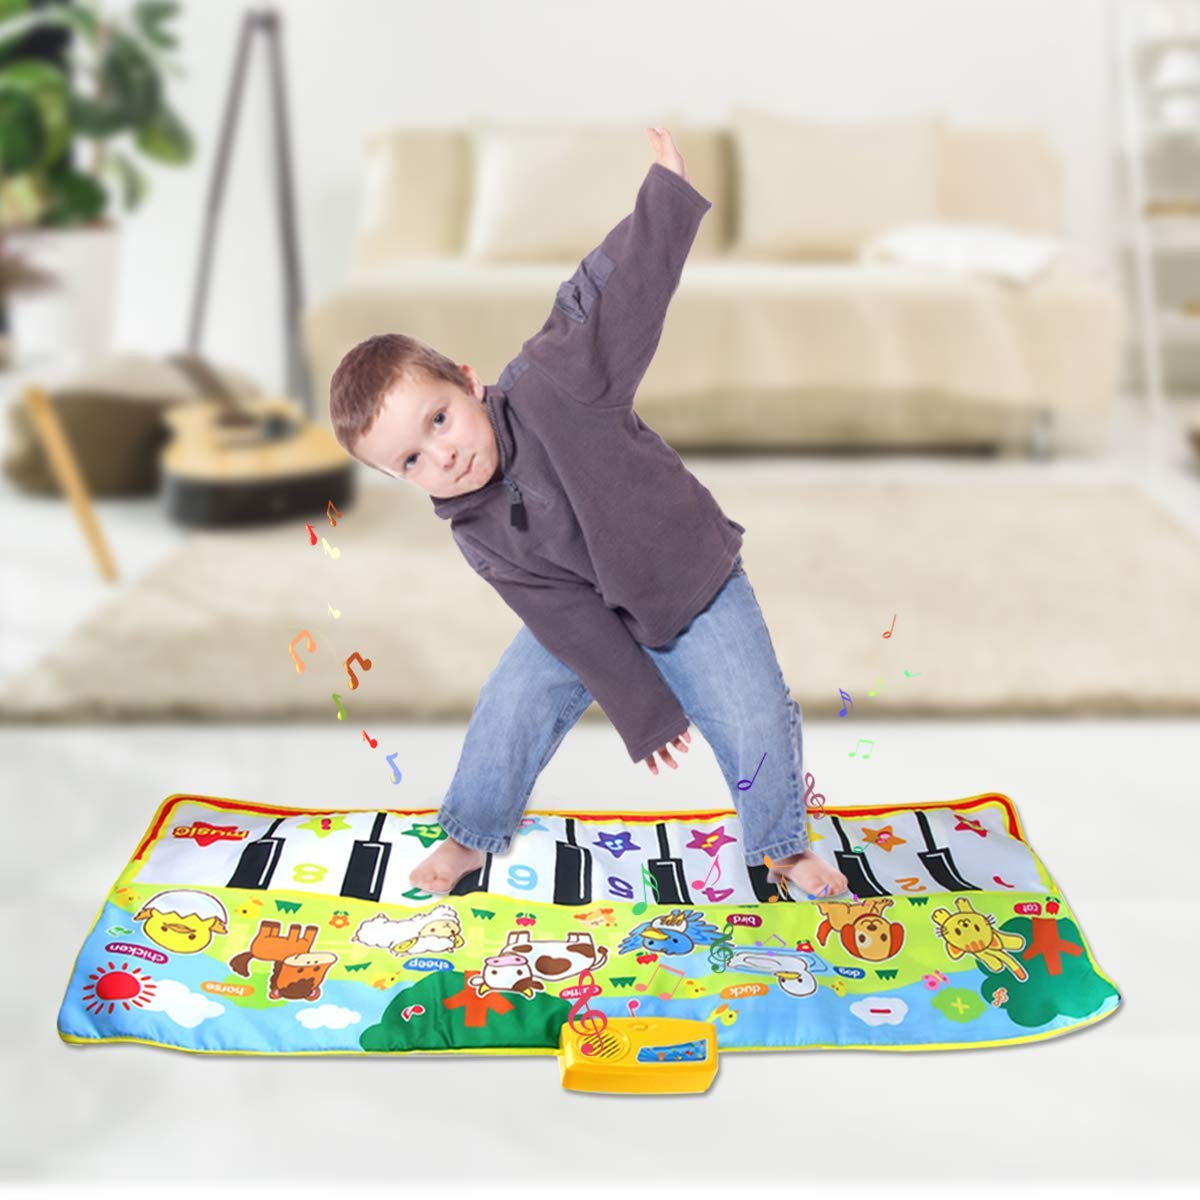 Joyfia Piano Mat, 53.2'' Electronic Music Piano Keyboard Carpet Animal Blanket Touch Dance Play Mat Toys, Baby Early Education Gifts for Kids Toddler Infant Boys Girls by Joyfia (Image #6)